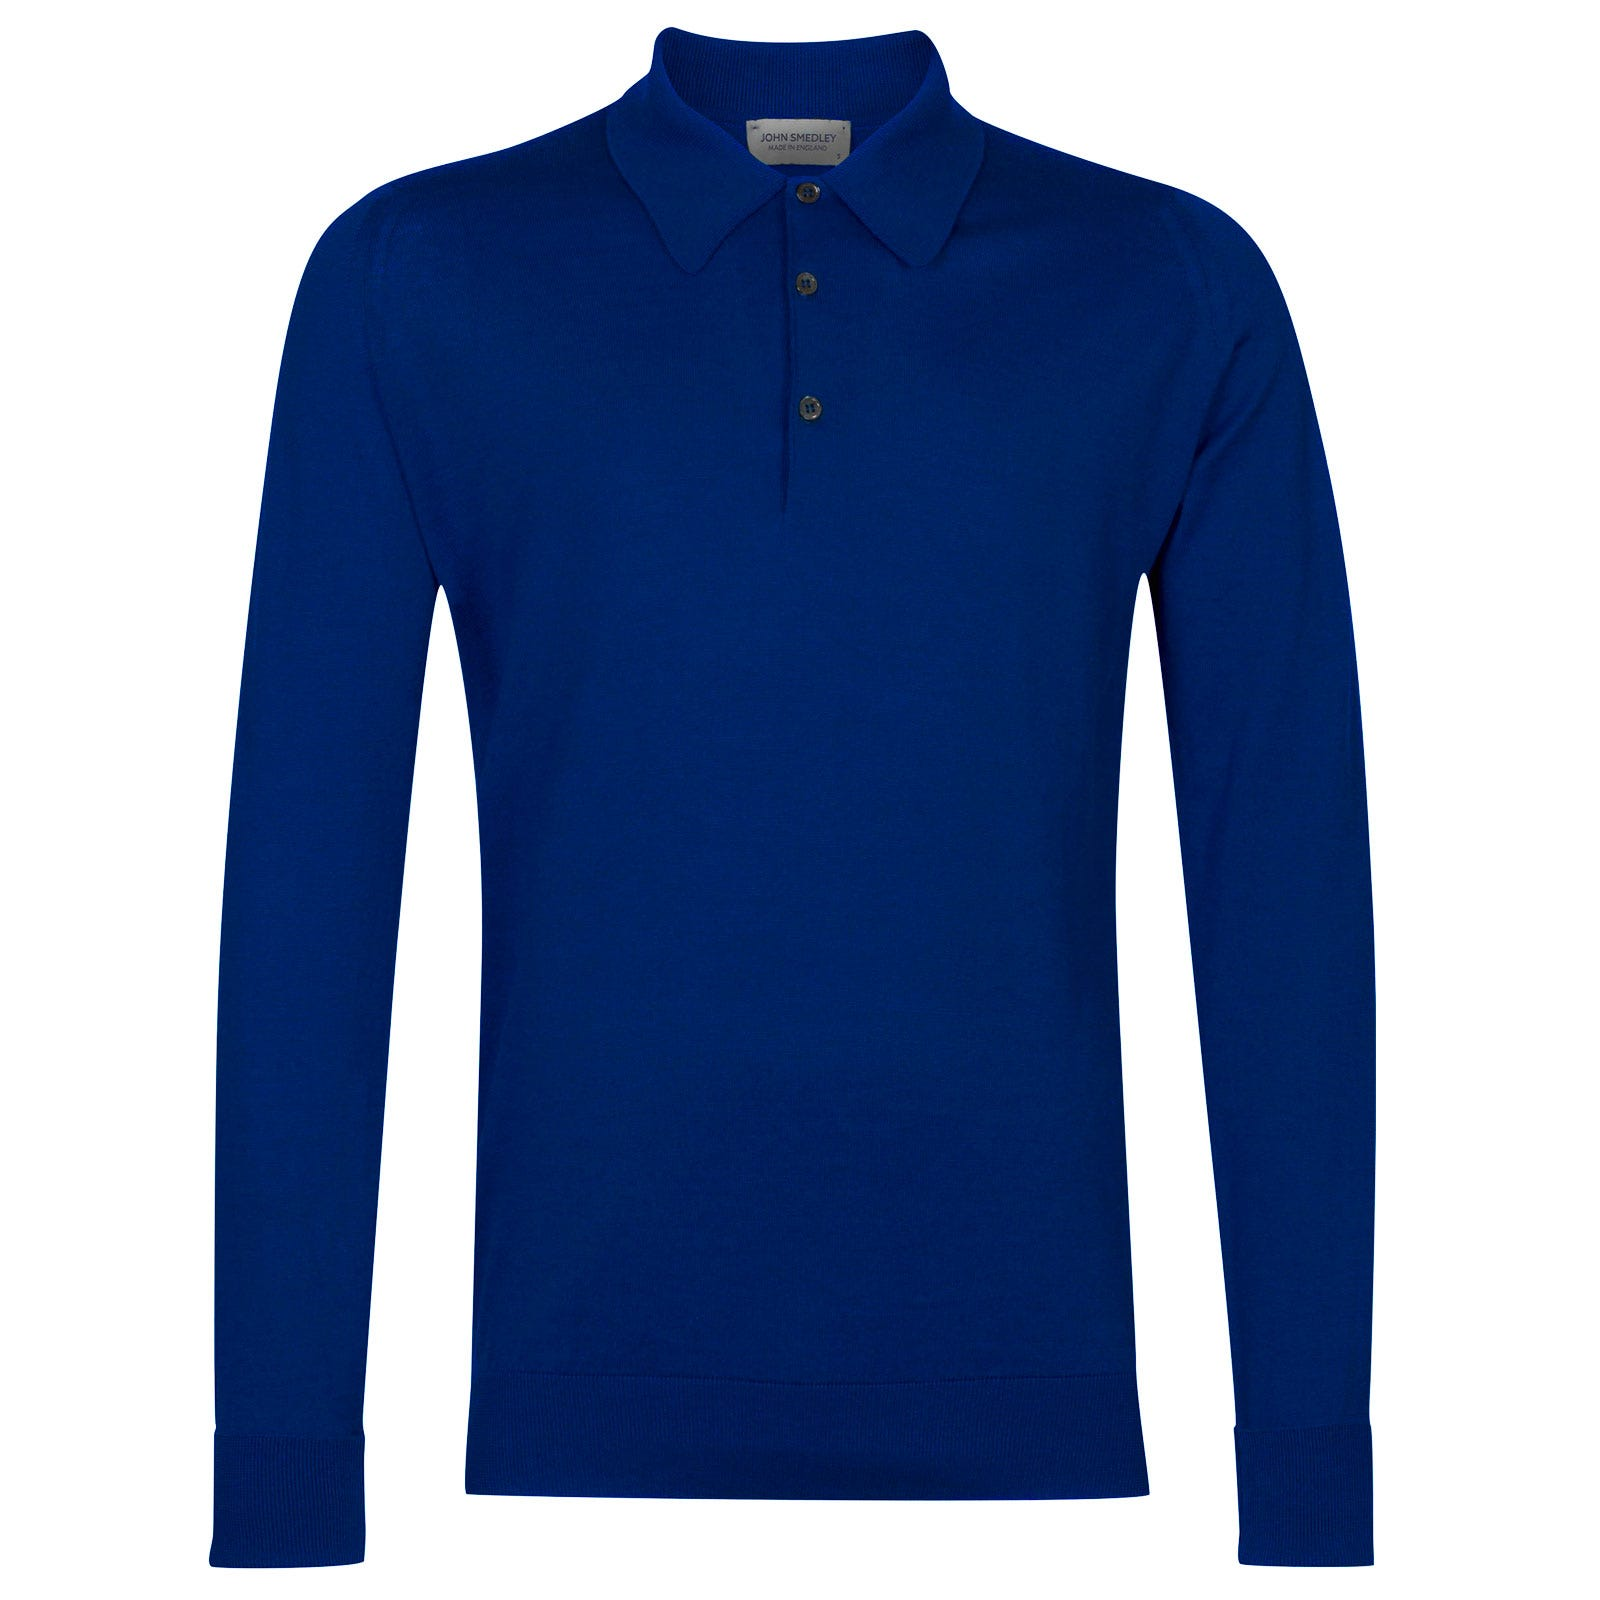 John Smedley finchley Sea Island Cotton Shirt in Coniston Blue-M